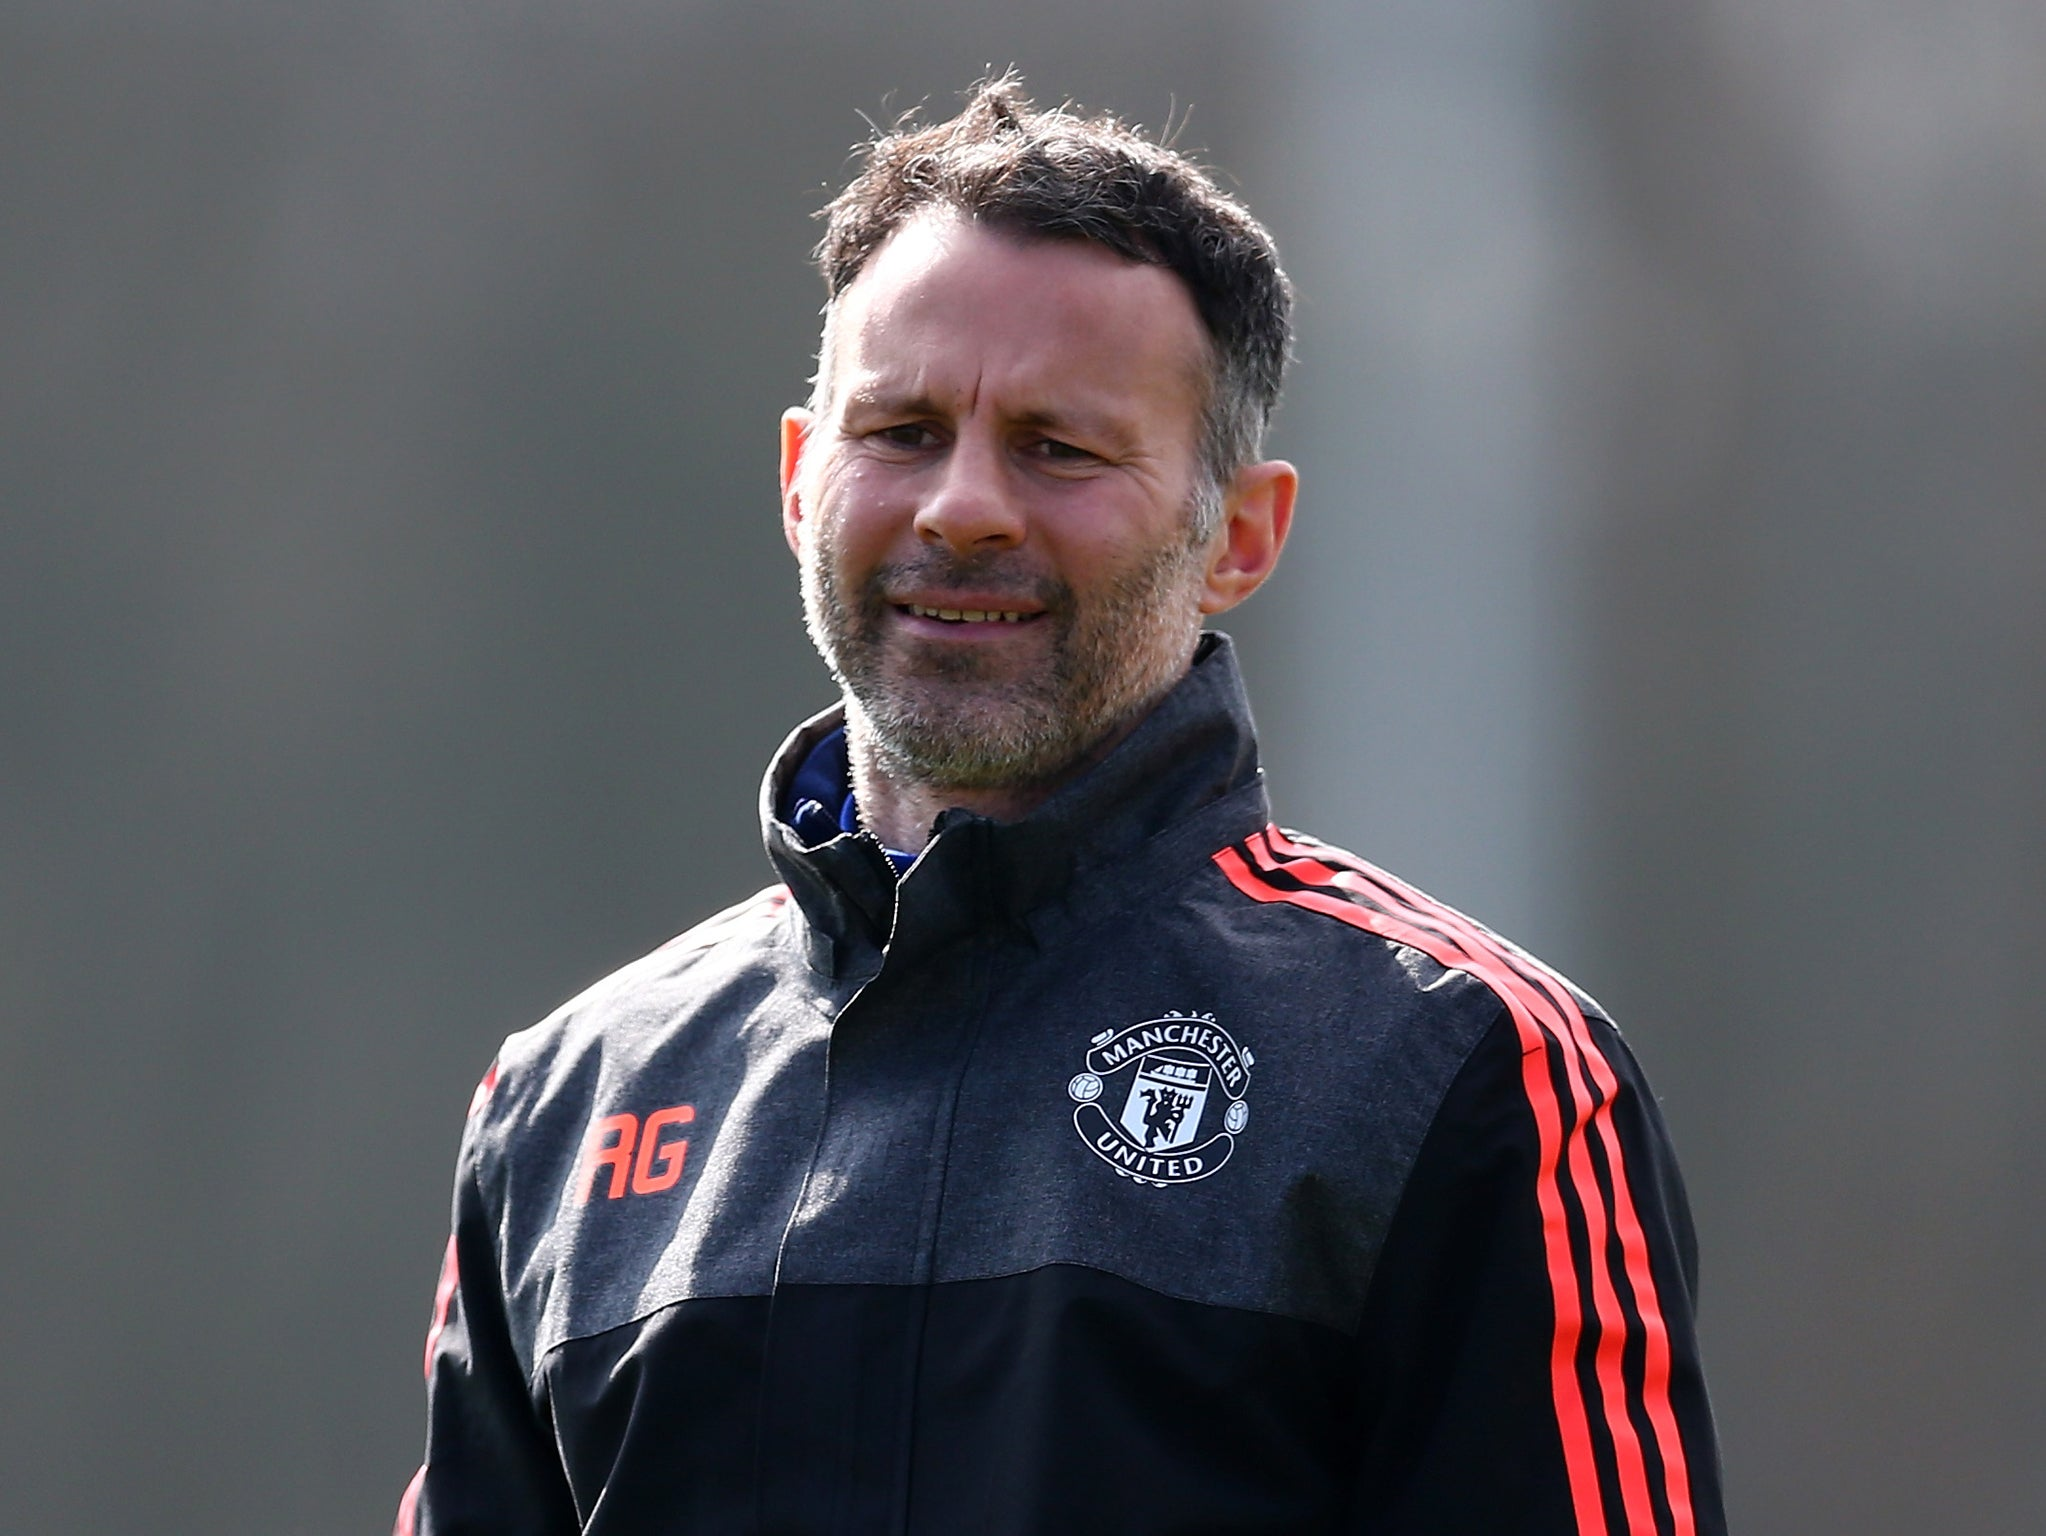 Ryan Giggs named Wales manager: Ex-Manchester United star succeeds Chris Coleman on four-year deal